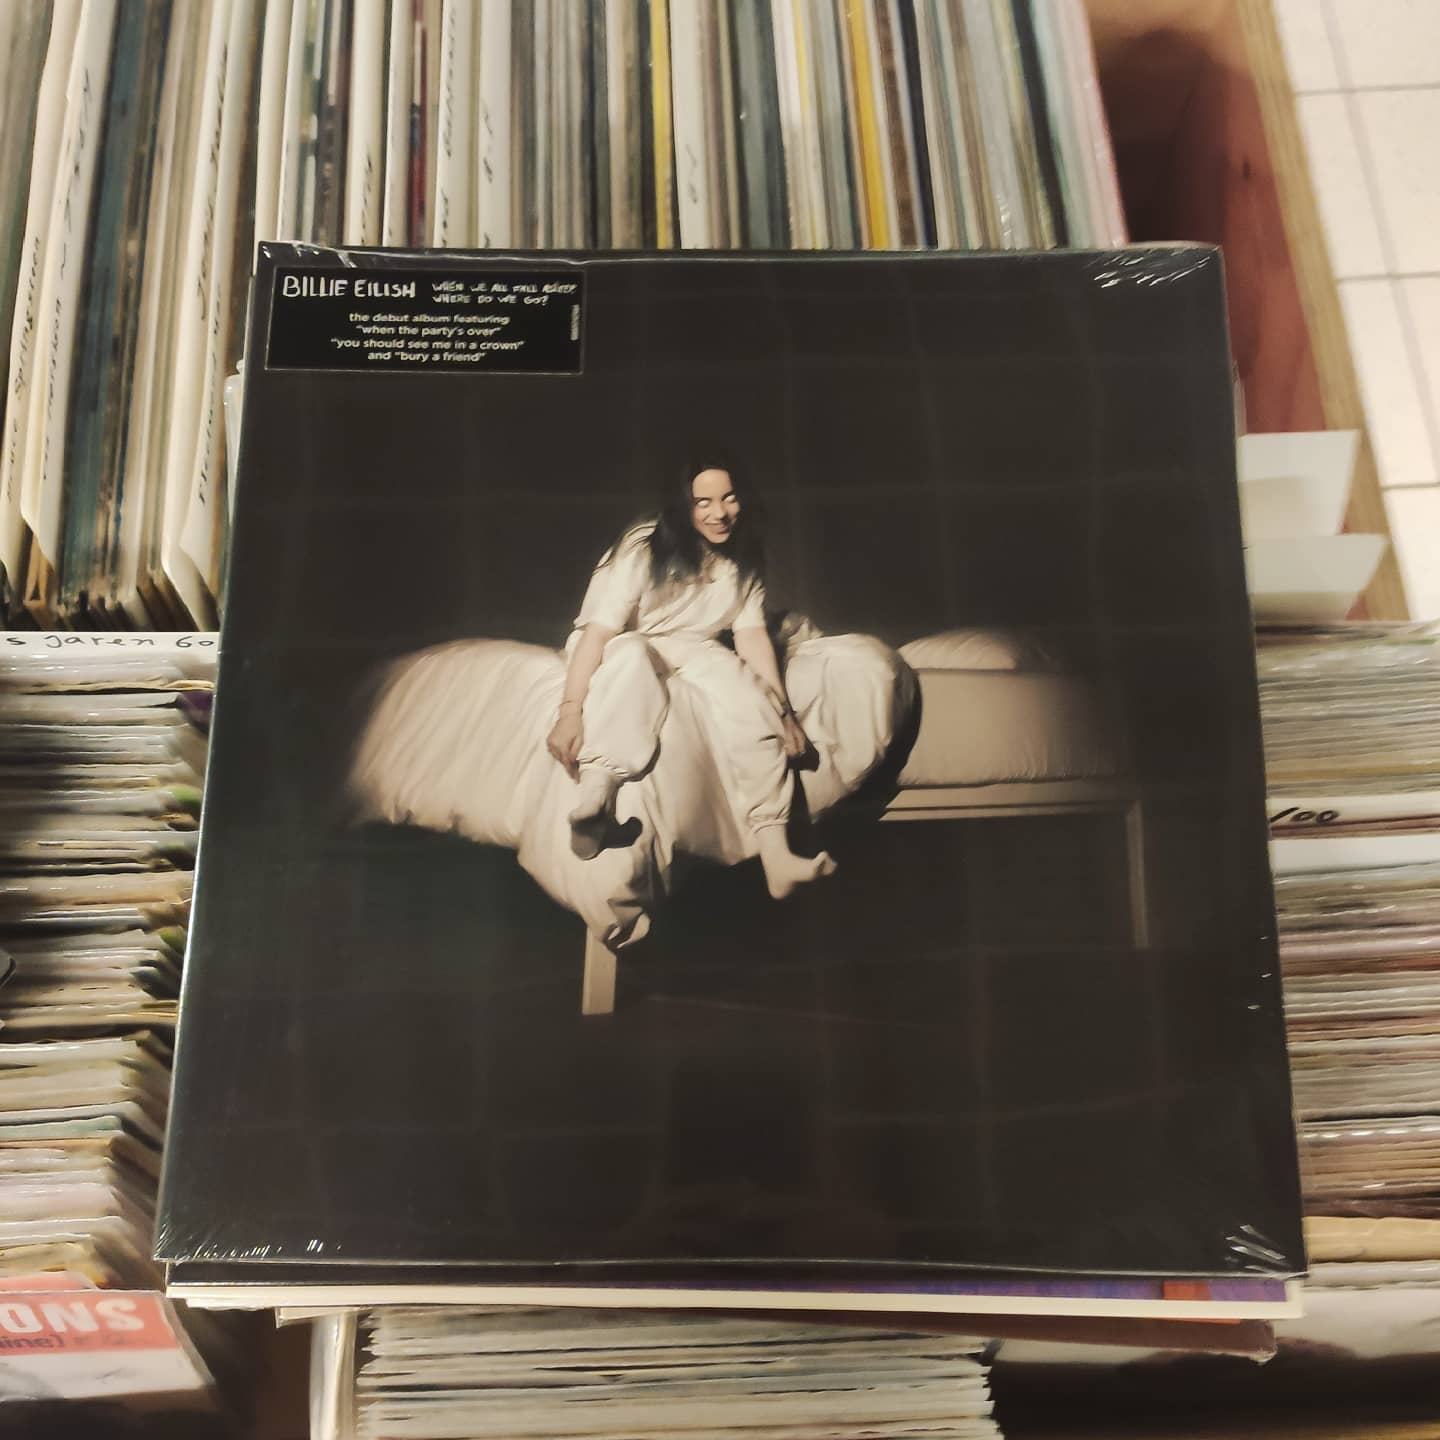 Product image Billie Eilish – When We All Fall Asleep, Where Do We Go? – LP Nieuw